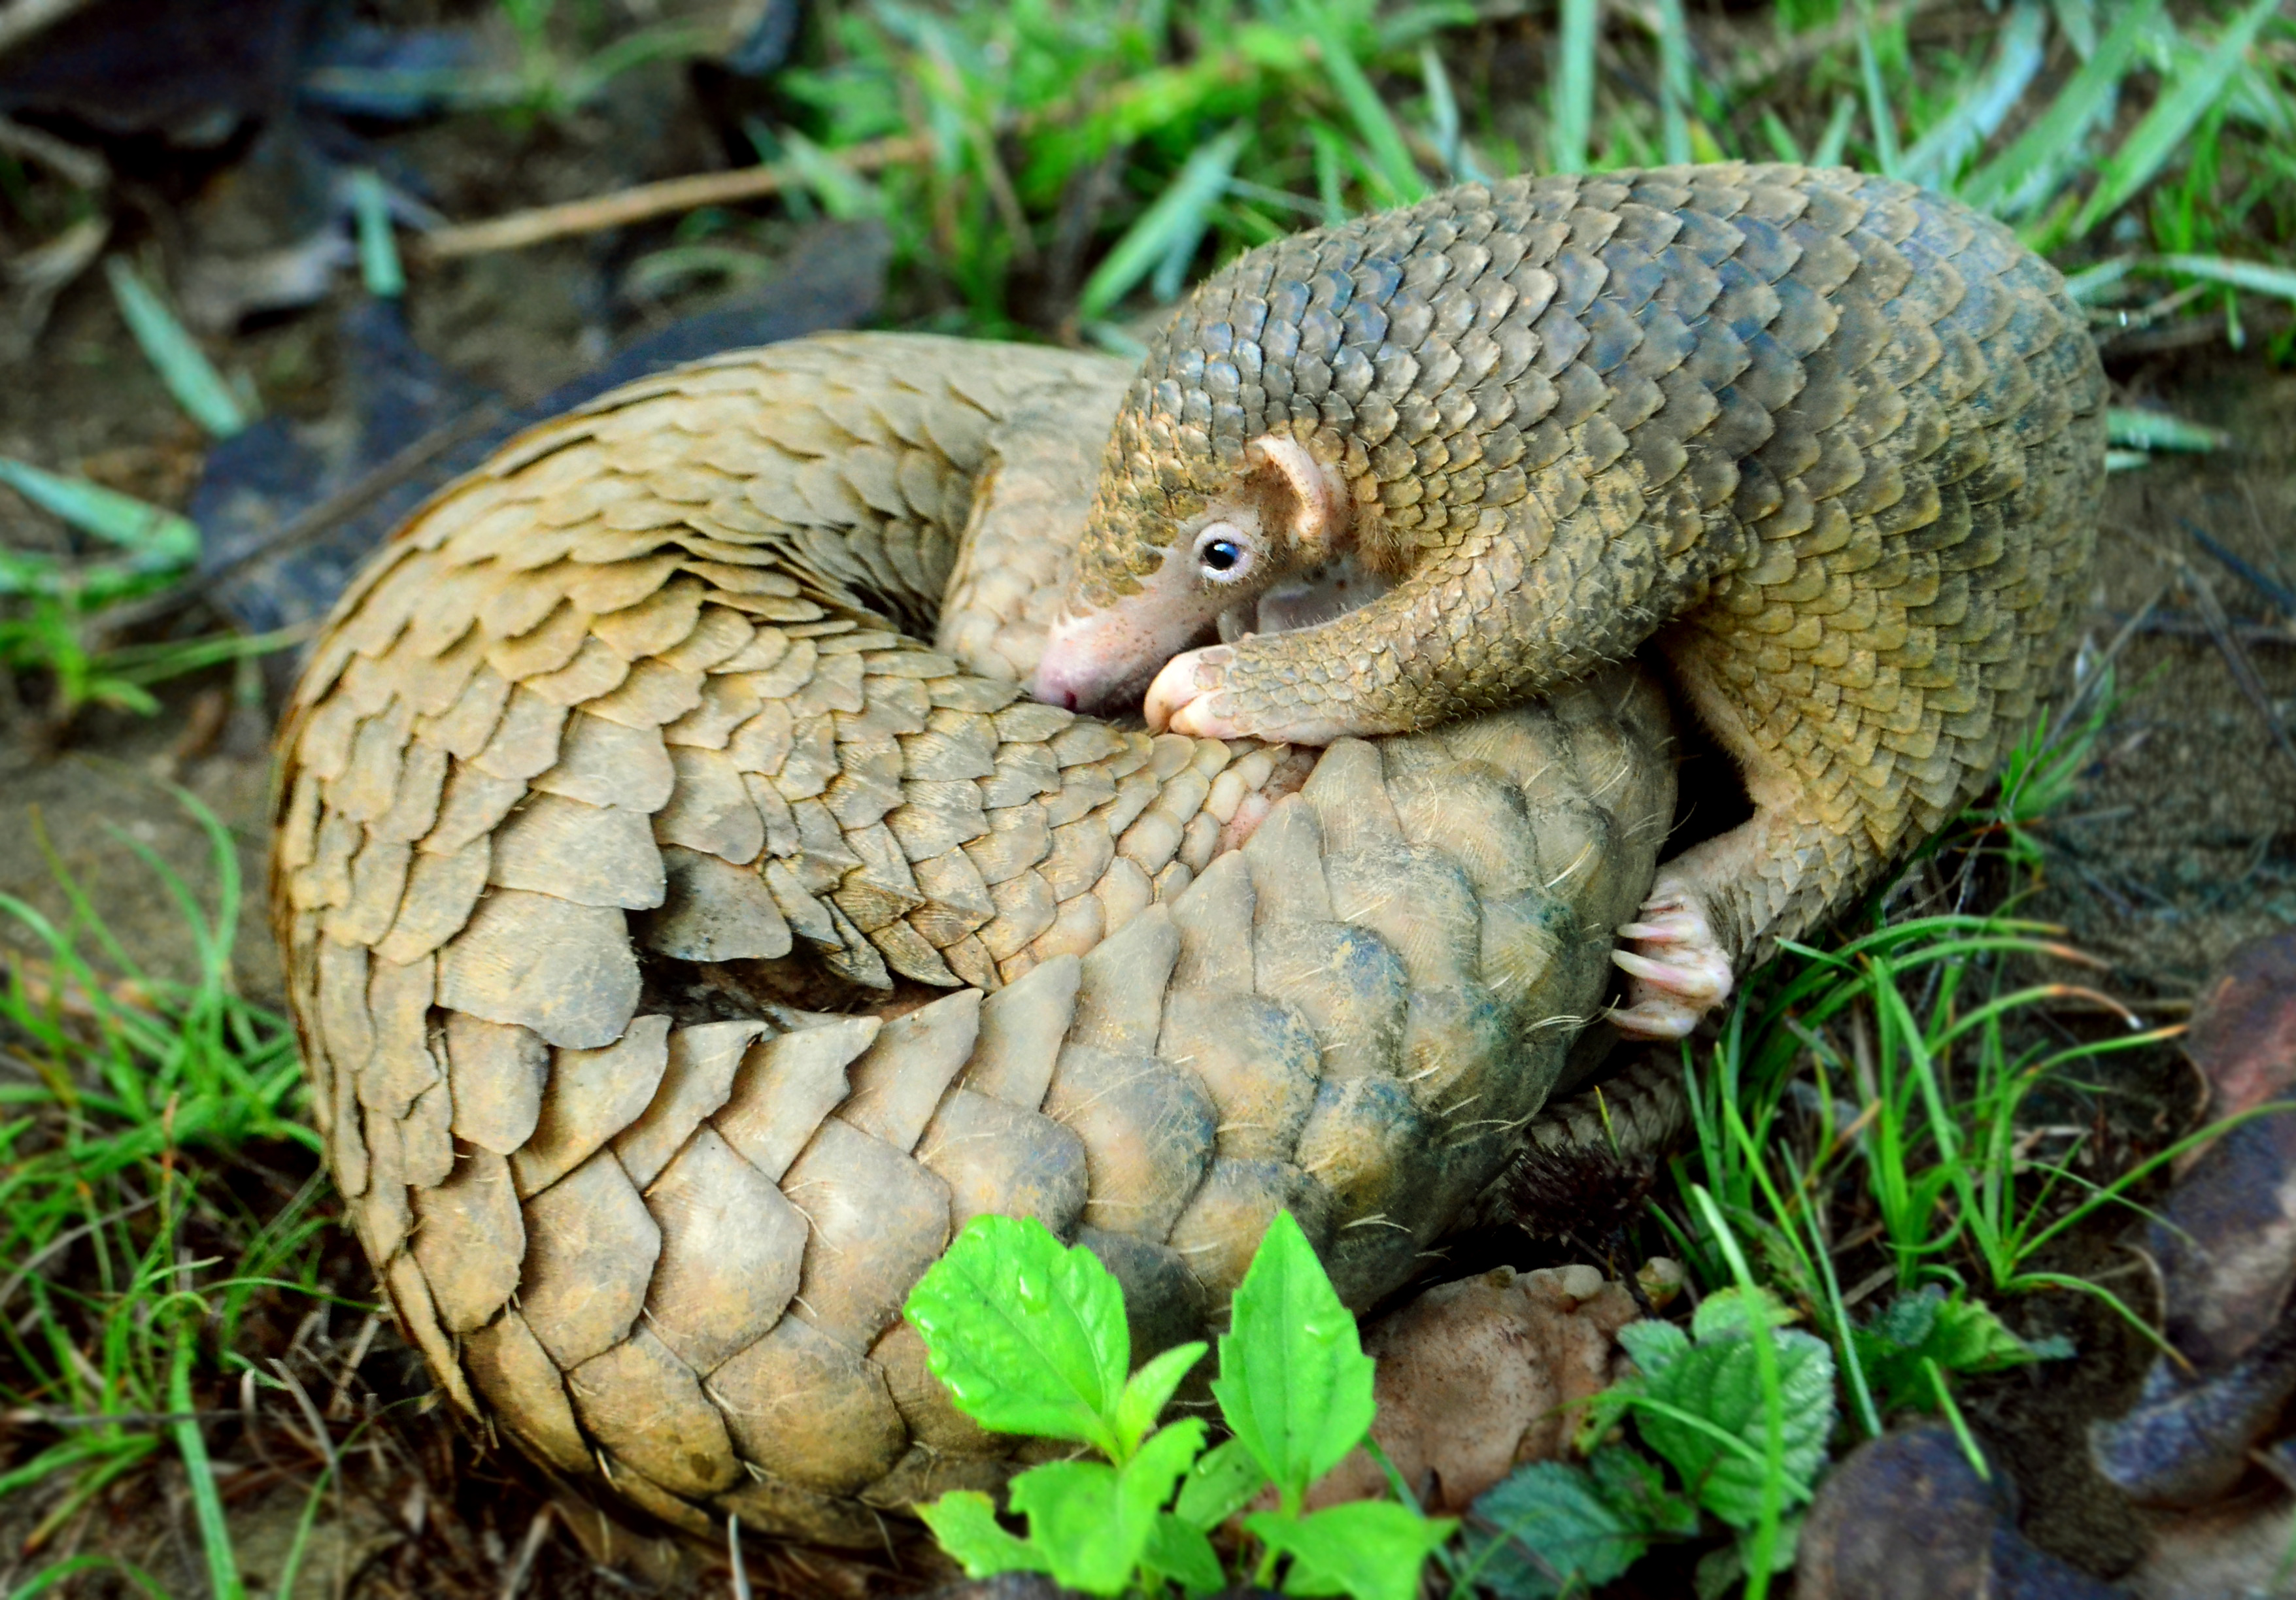 NRDC sues to extend endangered species protection to pangolin